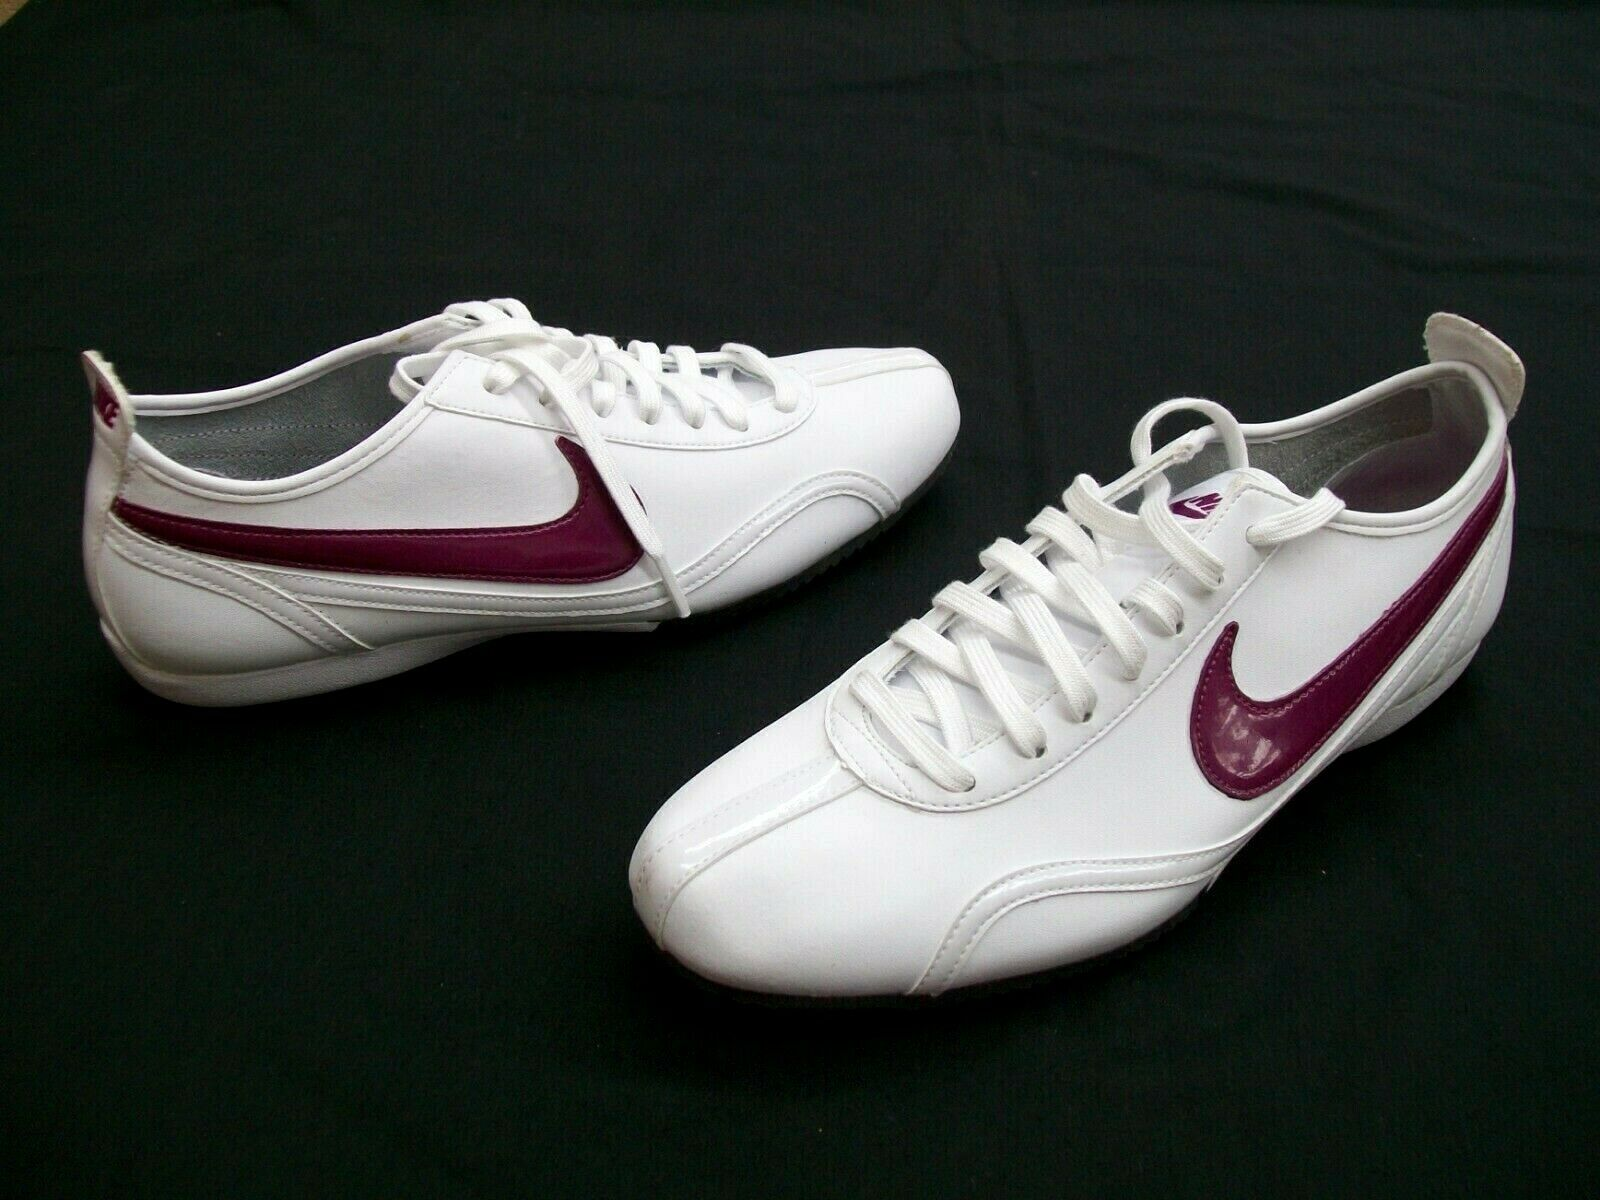 NIKE WOMENS LADIES RUNNERS IZANAMI 395762-104 SPORT TRAINERS SHOES US 8